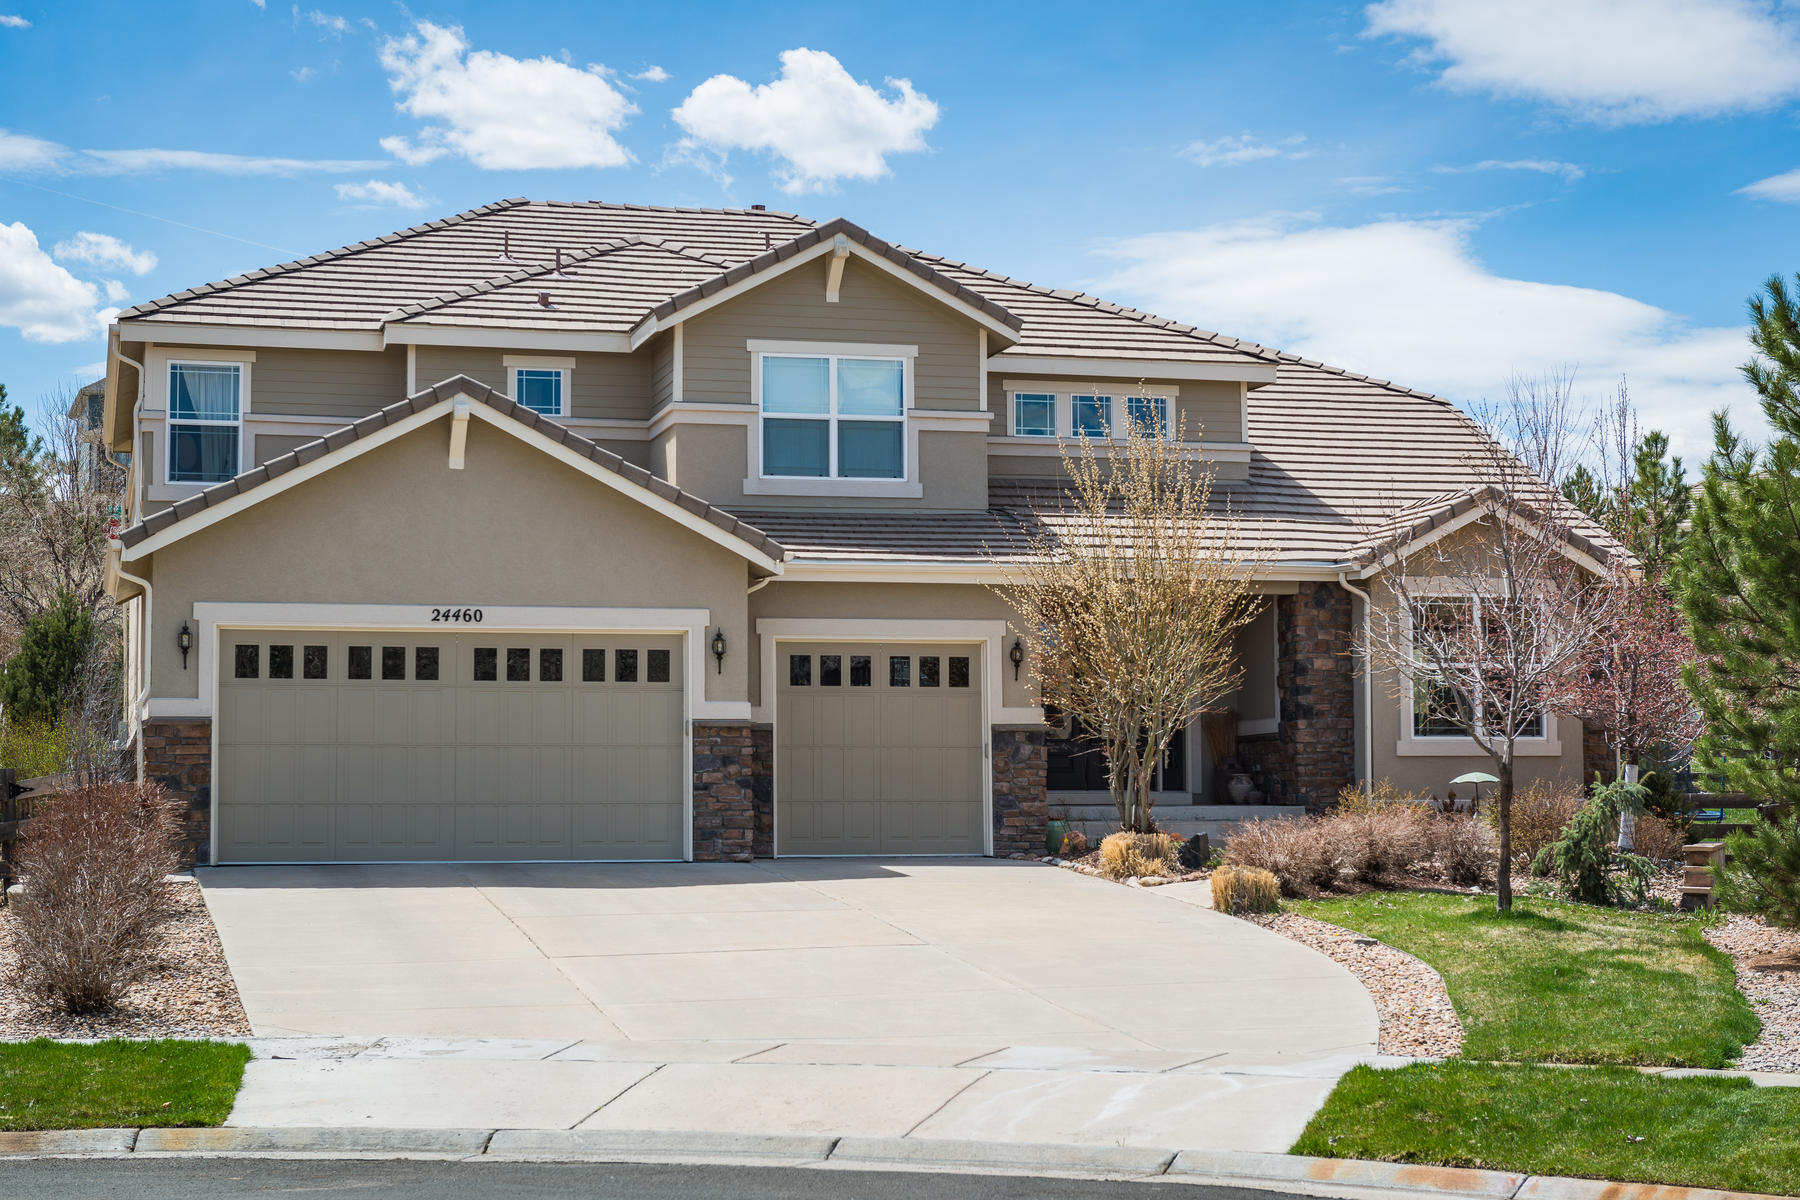 Single Family Homes for Sale at Amazing Semi-Custom Home in Highly Sought After Tallyn's Reach 24460 E Moraine Place, Aurora, Colorado 80016 United States